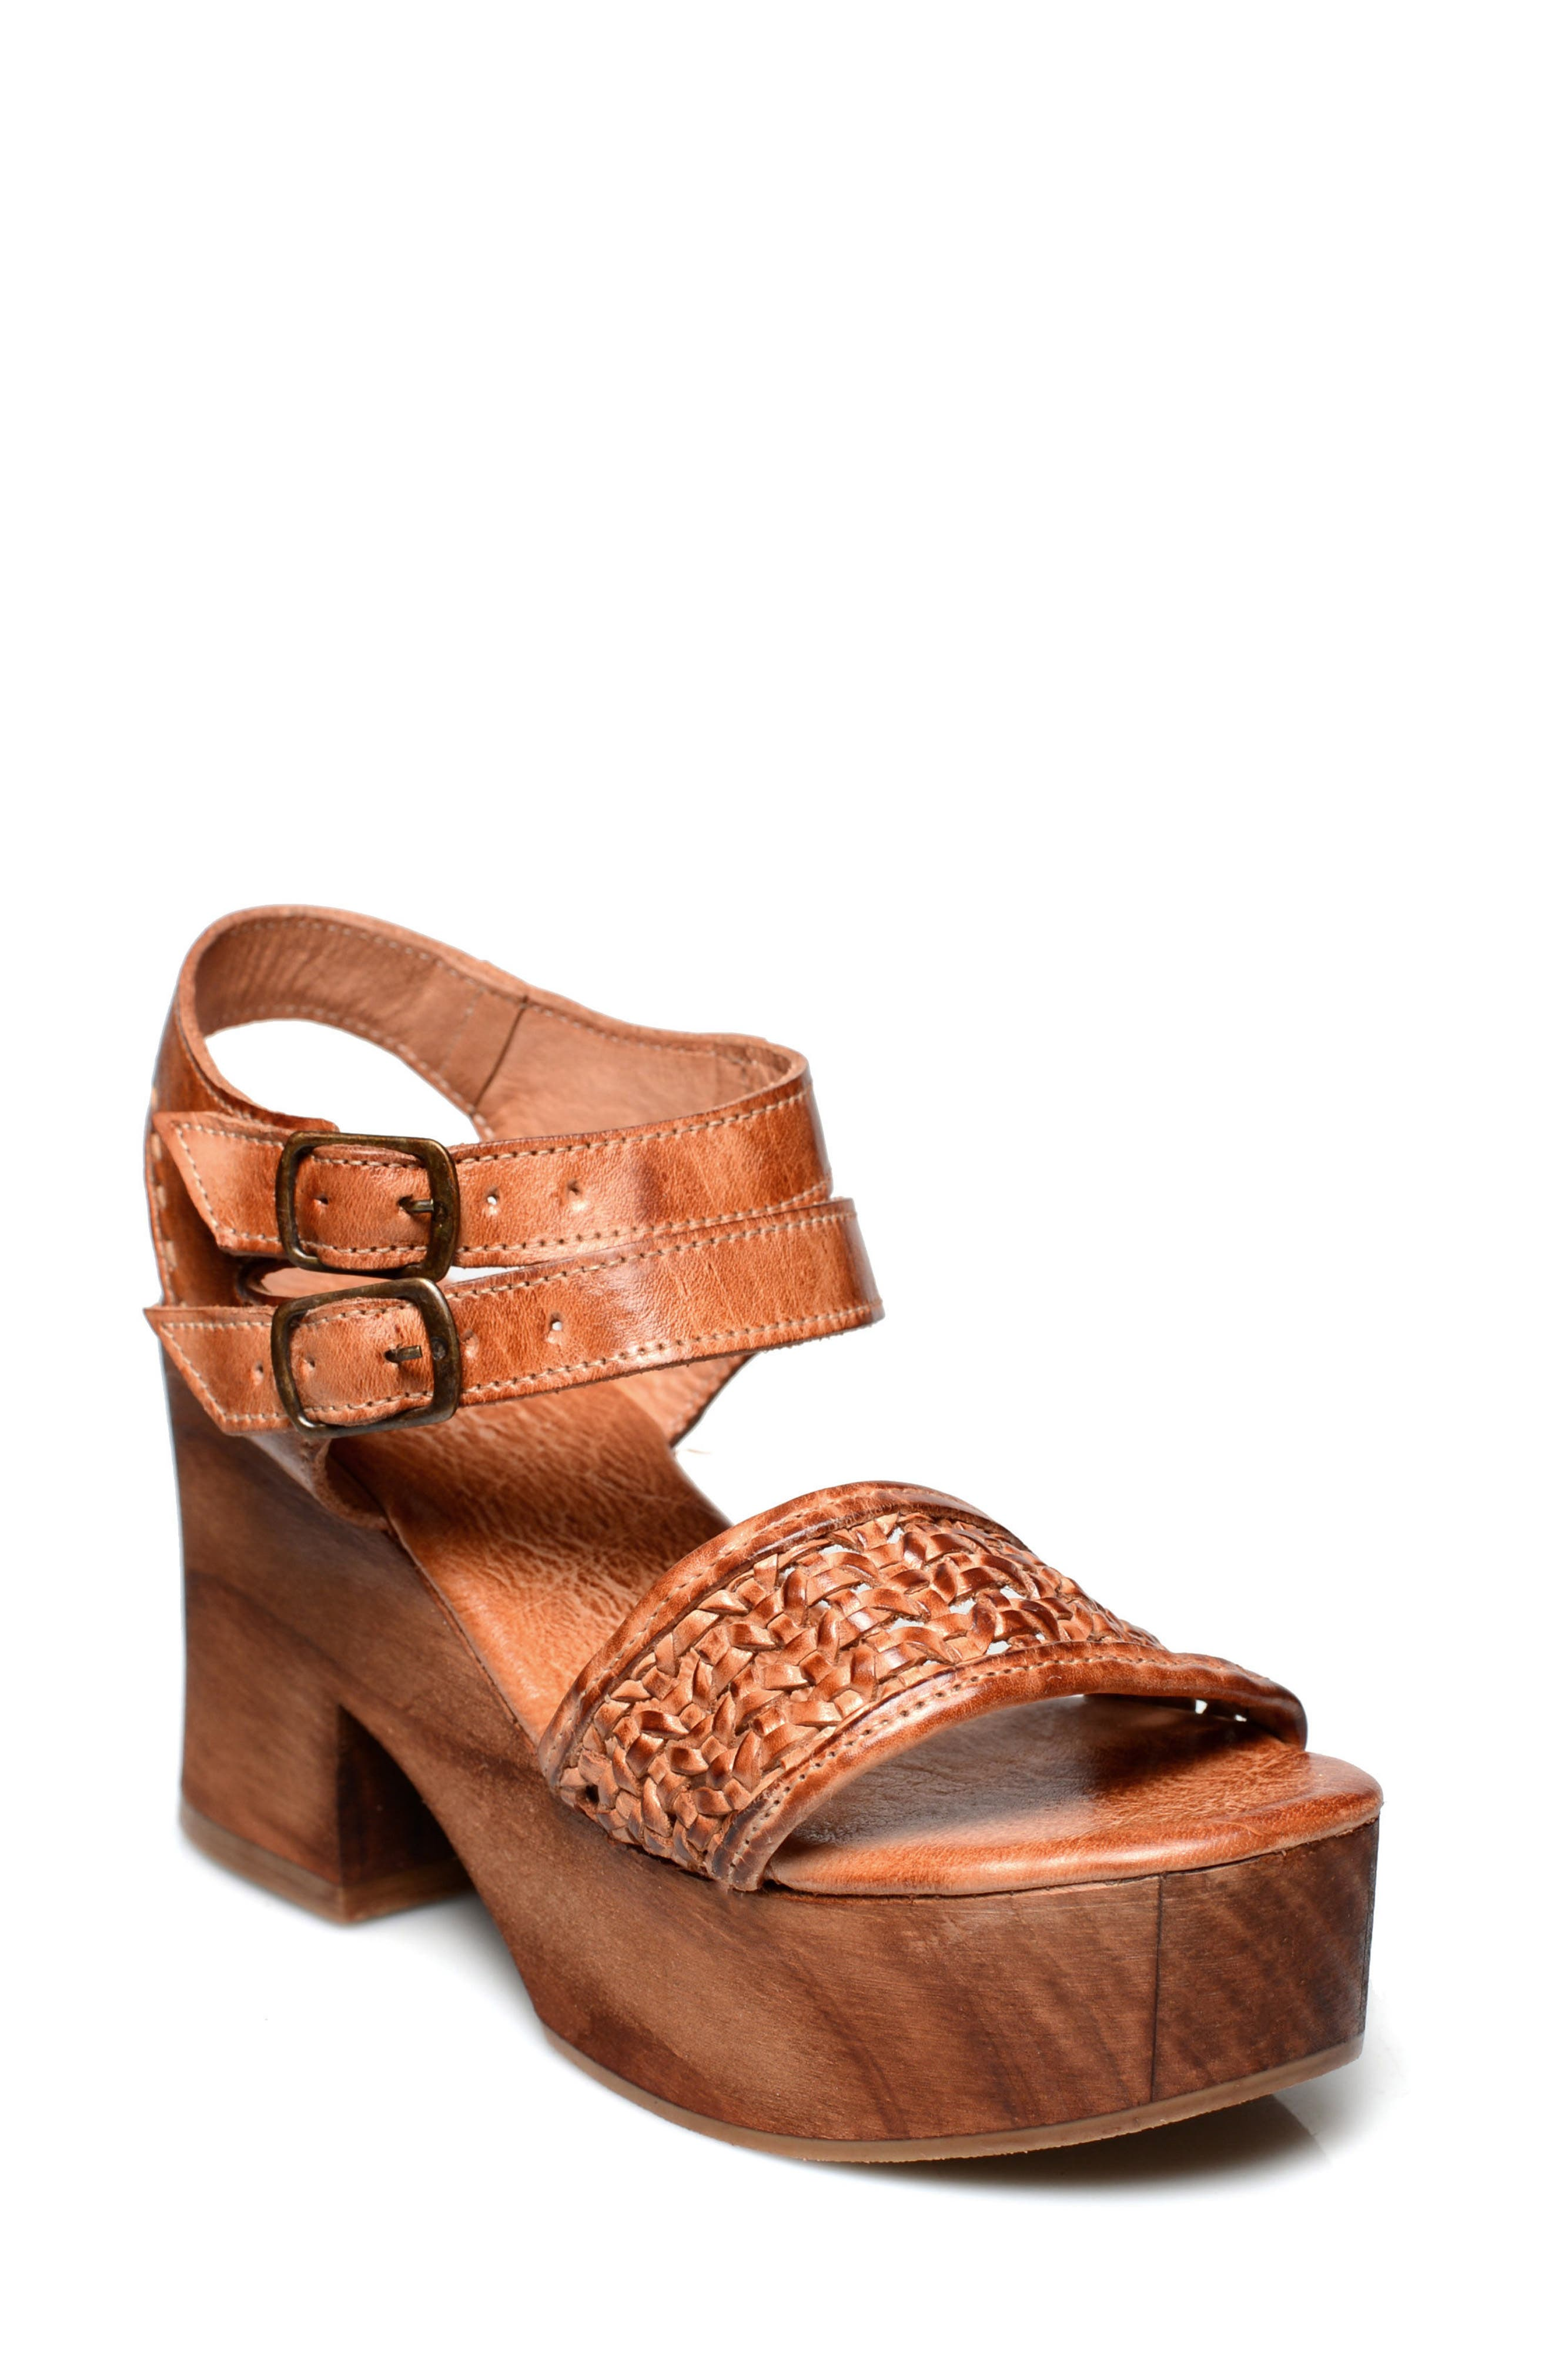 Alternate Image 1 Selected - Bed Stu Kenya Platform Sandal (Women)